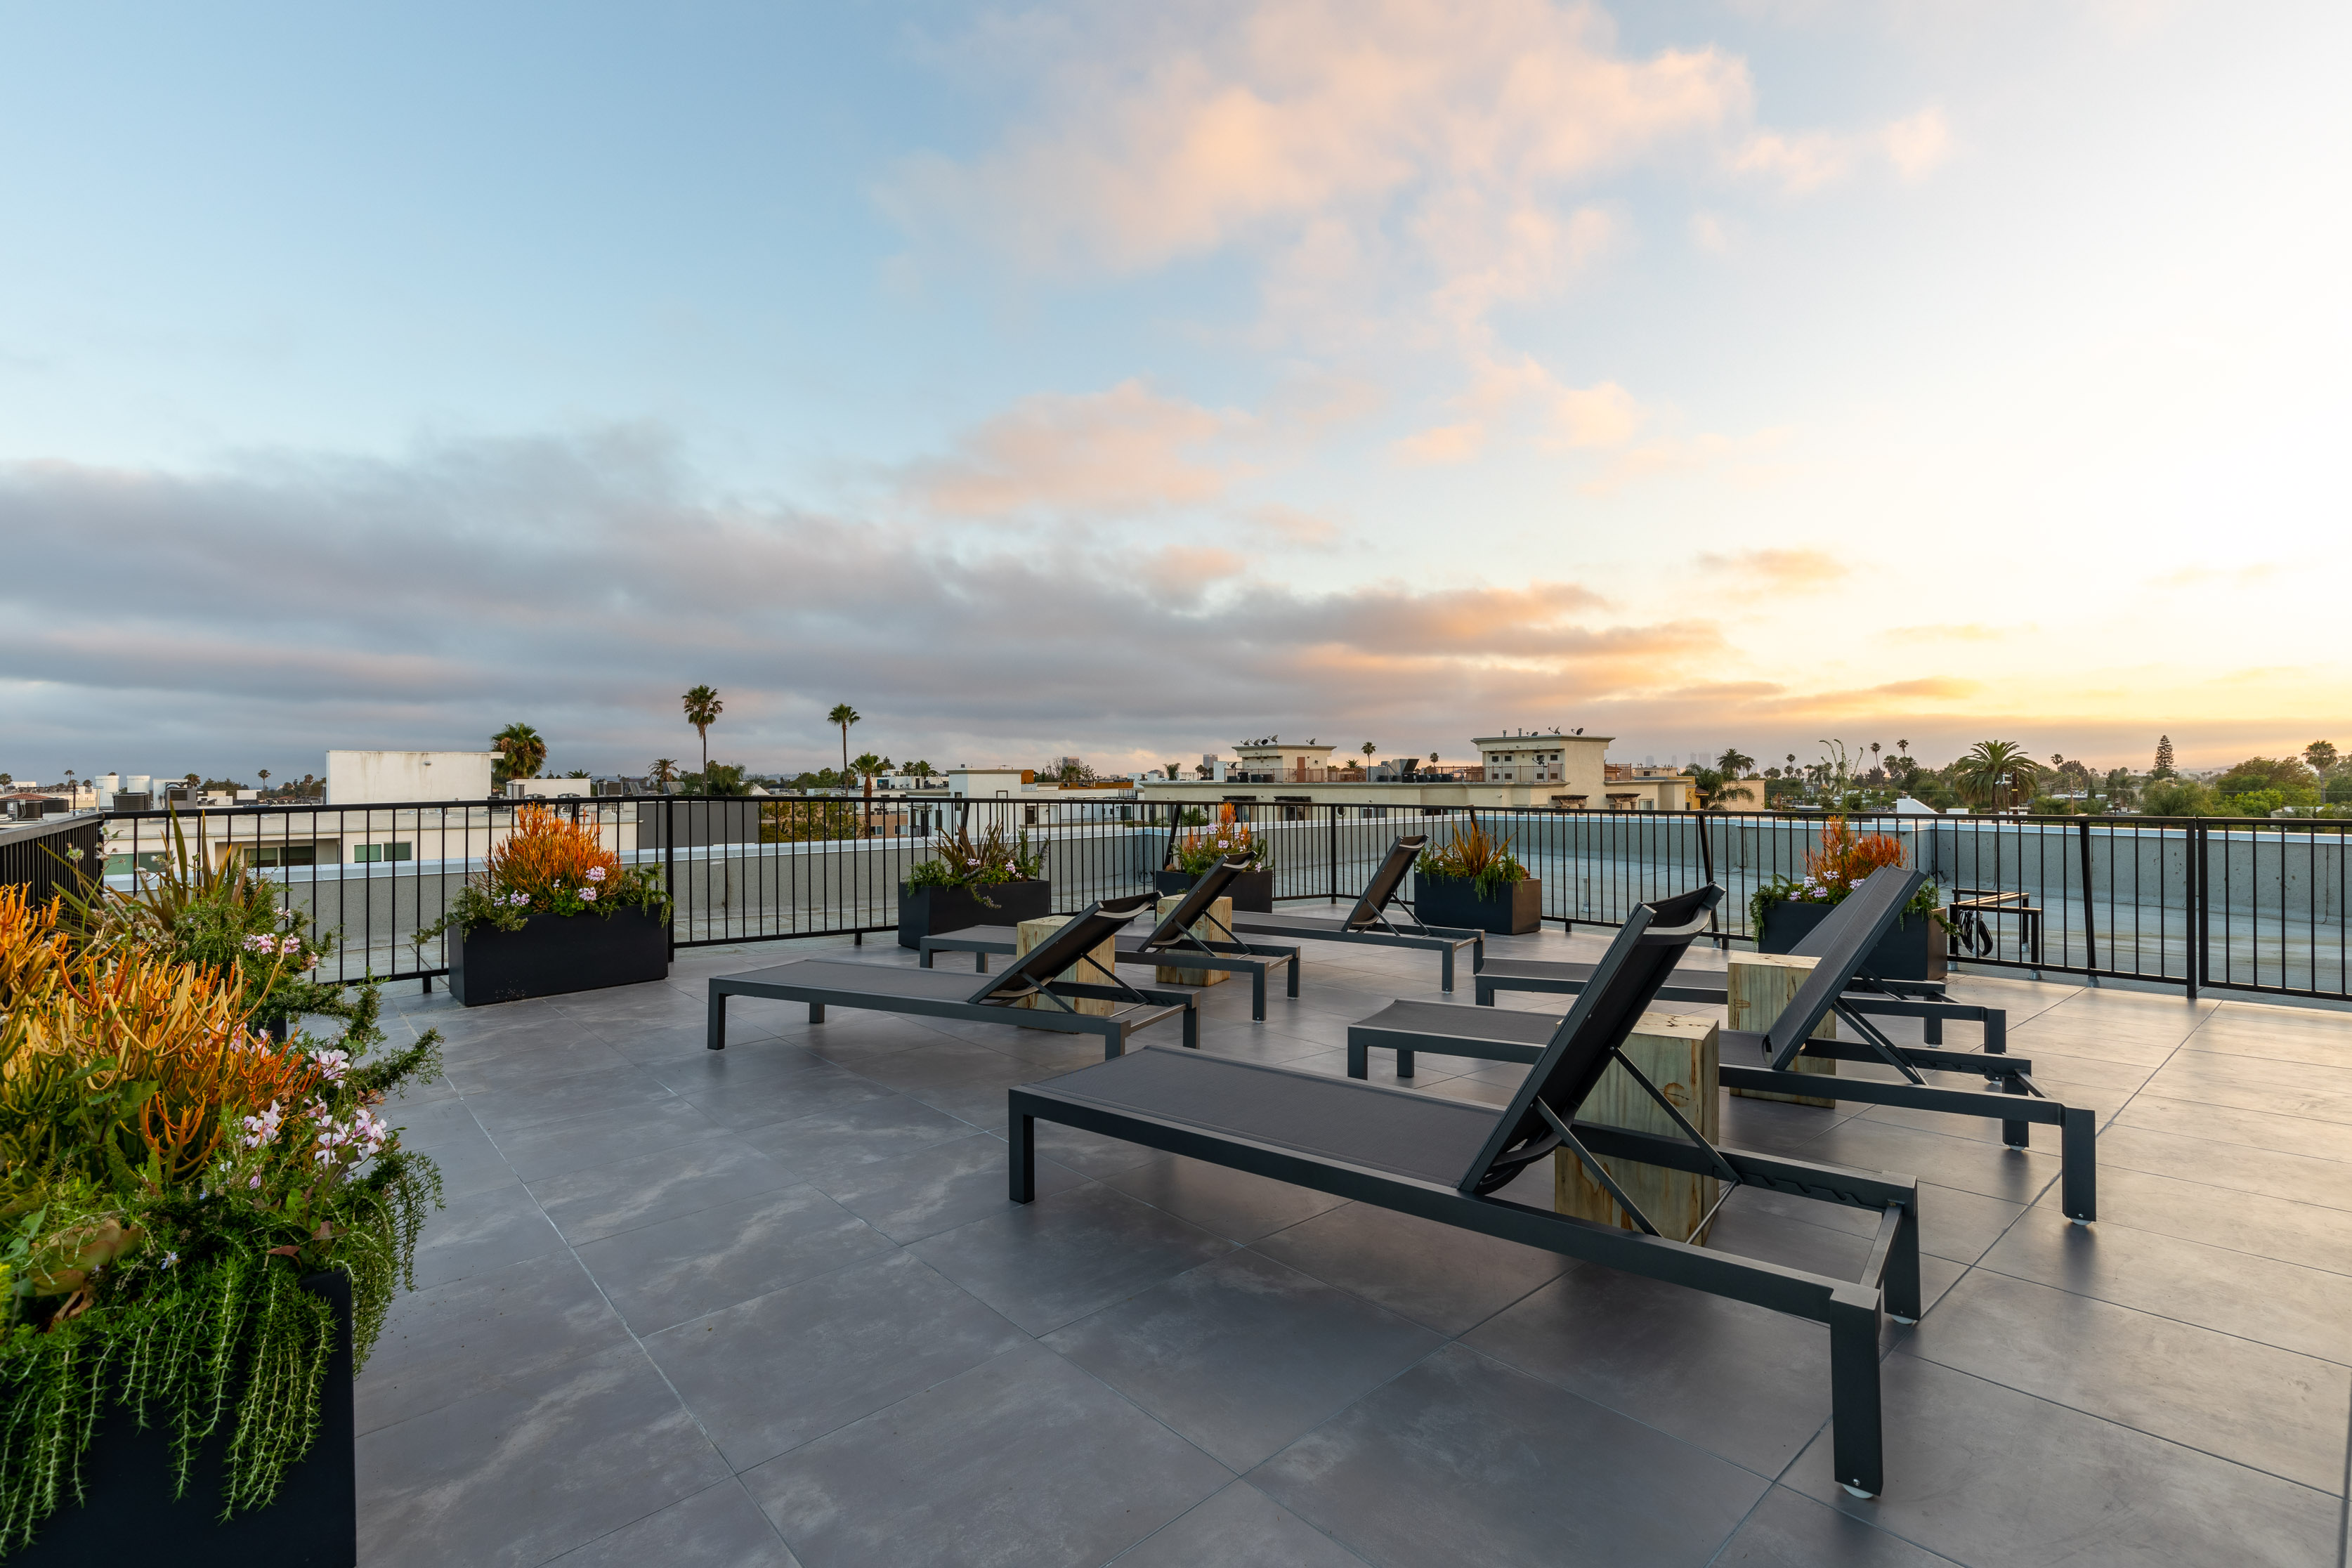 2BR/ 2BA W/ LARGE PRIVATE PATIO, ROOFTOP, GYM, & 2 PARKING SPACES IN A BRAND-NEW LUXURY BUILDING